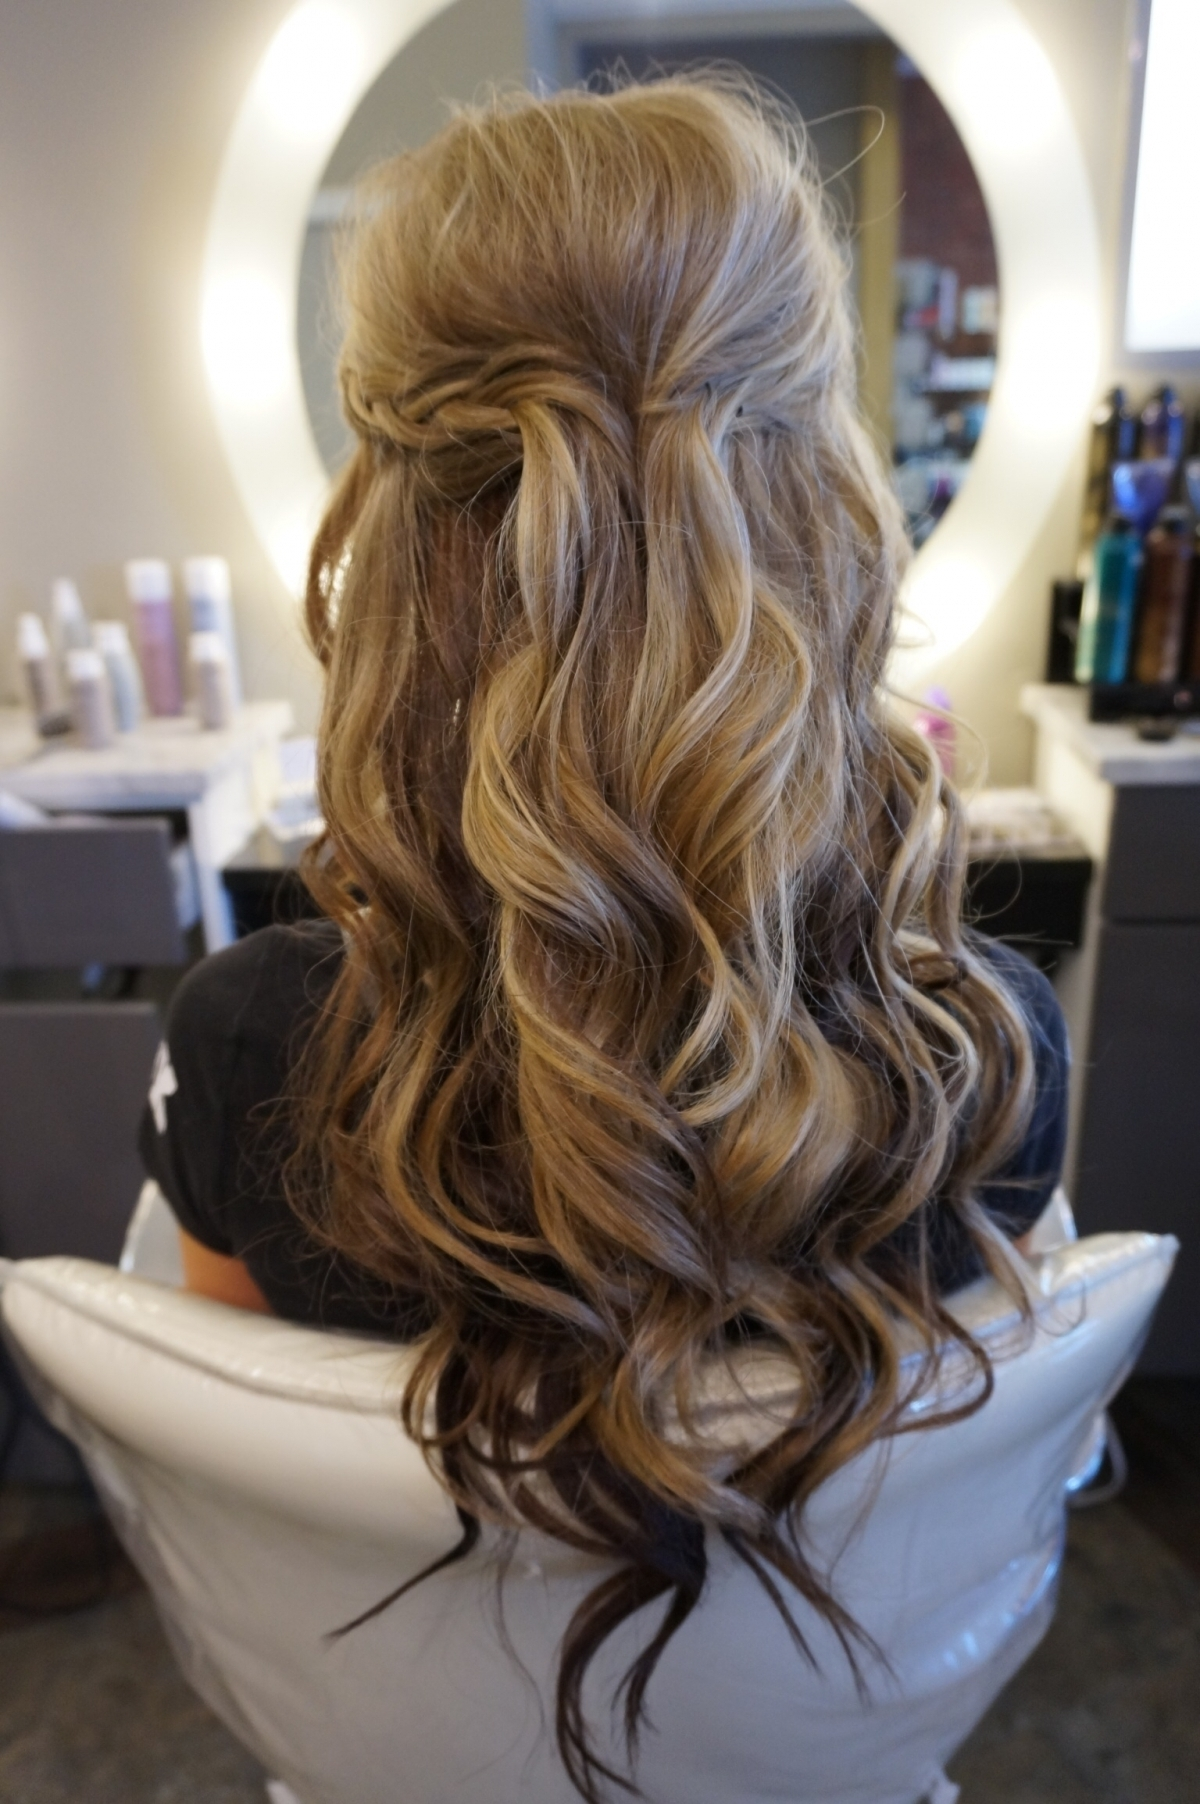 Justswimfl Within Favorite Hair Half Up Half Down Wedding Hairstyles Long Curly (View 12 of 15)